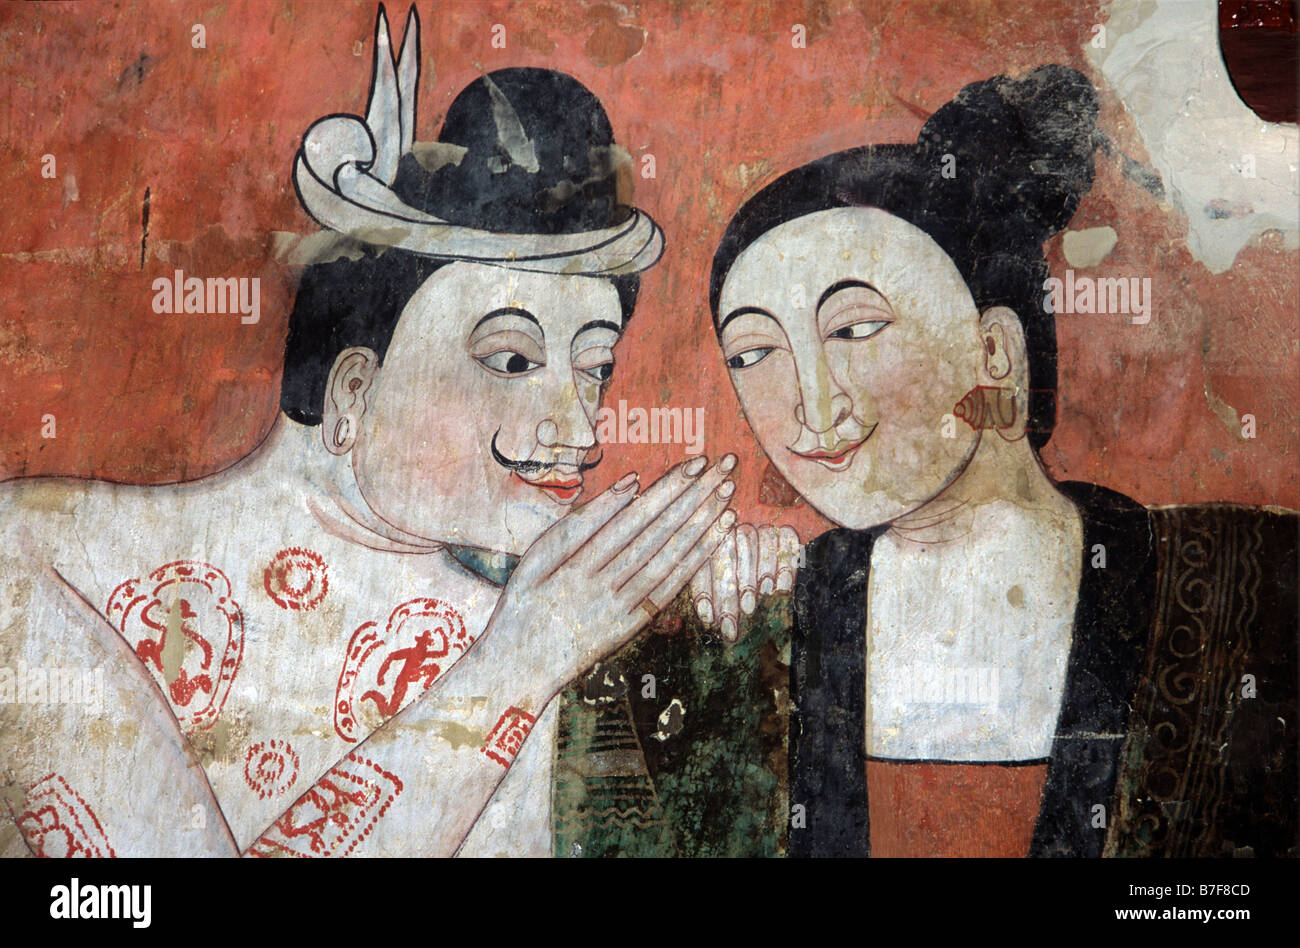 Thai Lovers Seduction, c19th Mural or Wall Painting by Thit Buaphan, Wat Phumin Temple, Nan, northern Thailand Stock Foto